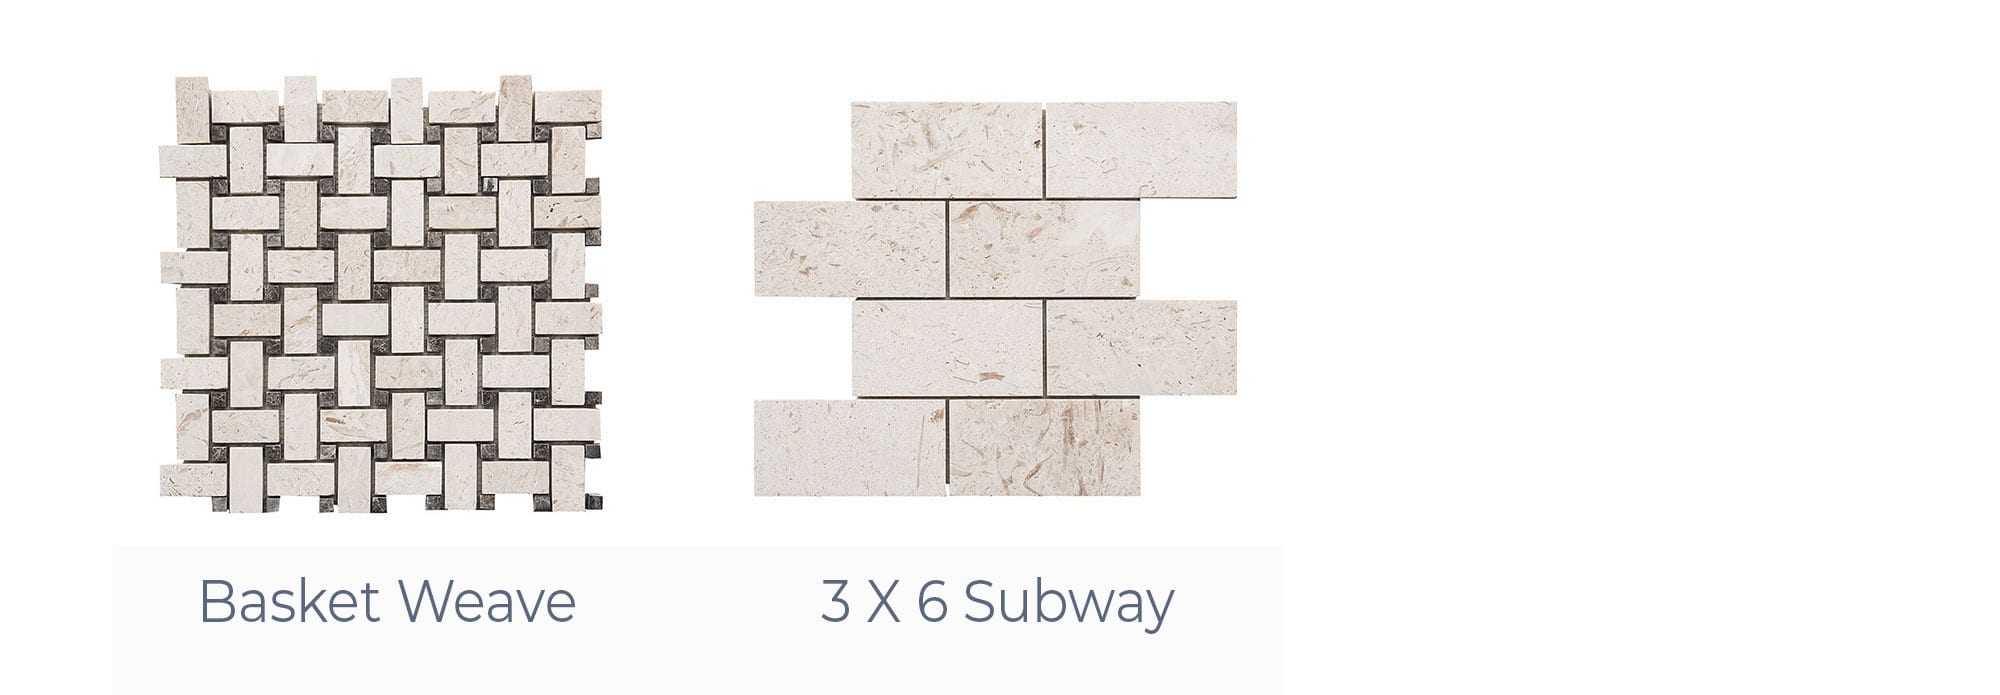 Stoneline-Group-Shell-Beige-Travertine-Marble-Collection-Marble-Mosaic-Hexagon-Basket-Wiev-3X6-Subway-Pictures